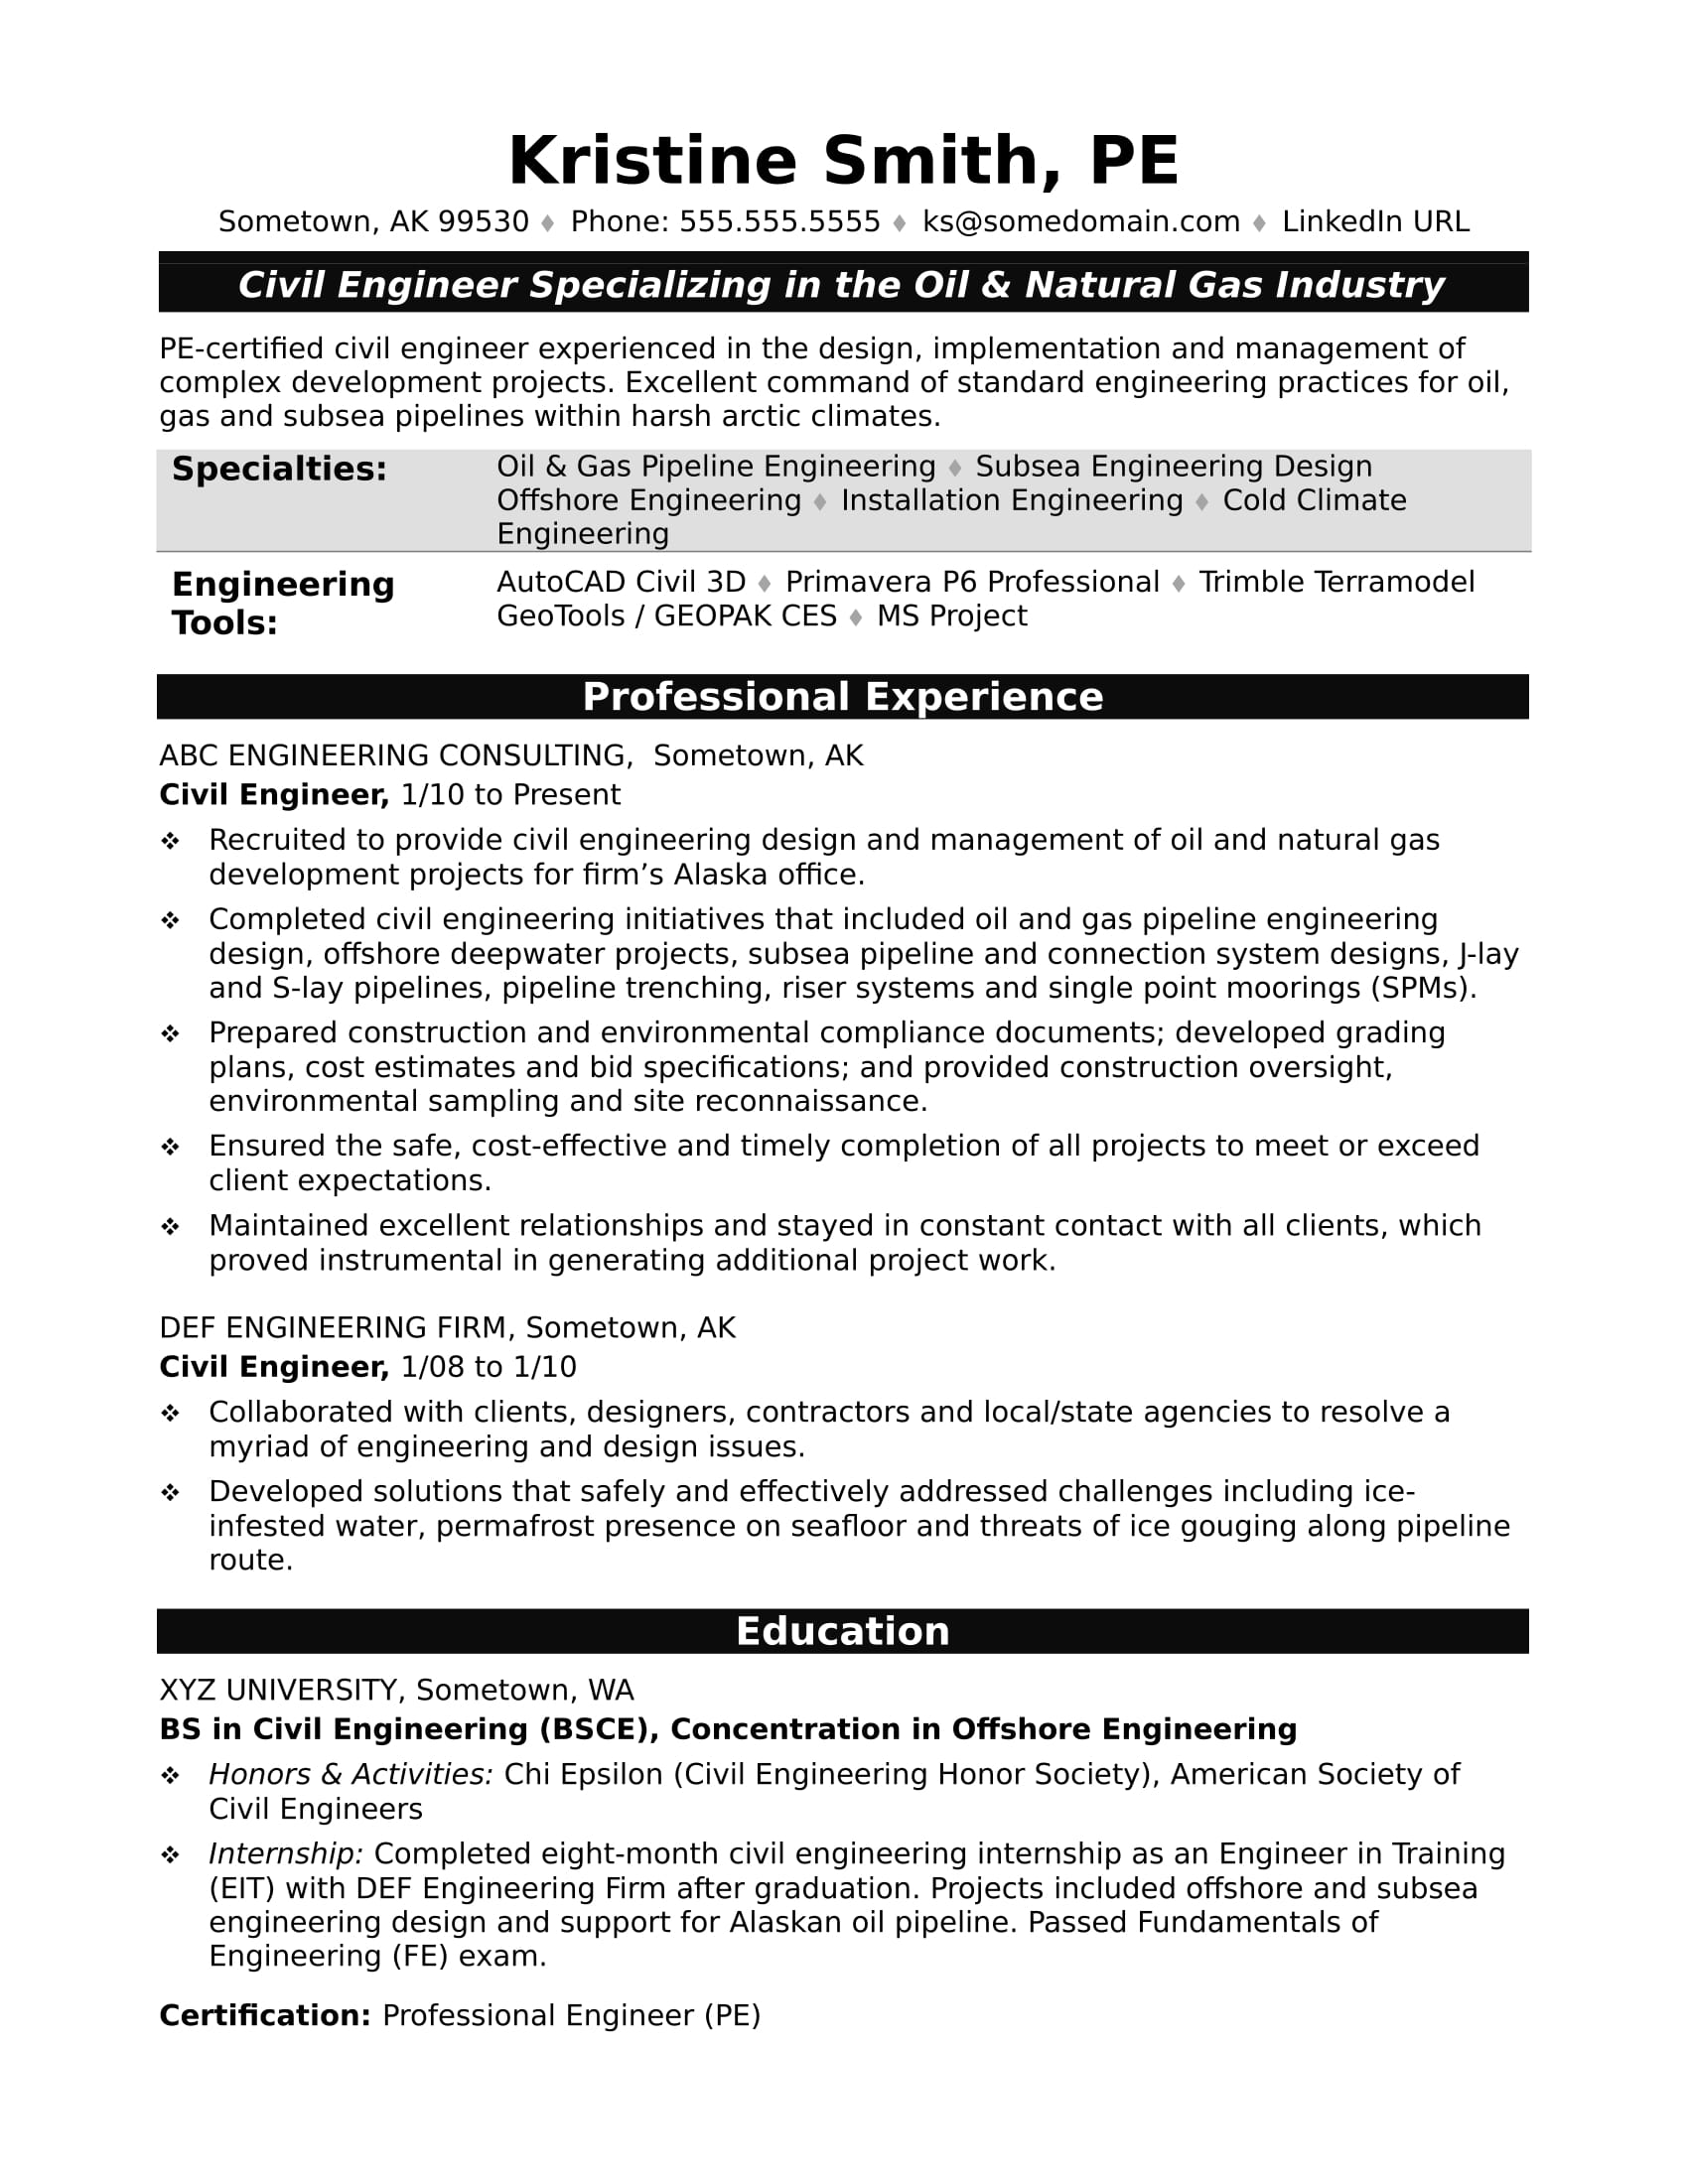 Civil Engineer Resume Sample Sample Resume for a Midlevel Civil Engineer Monster 2